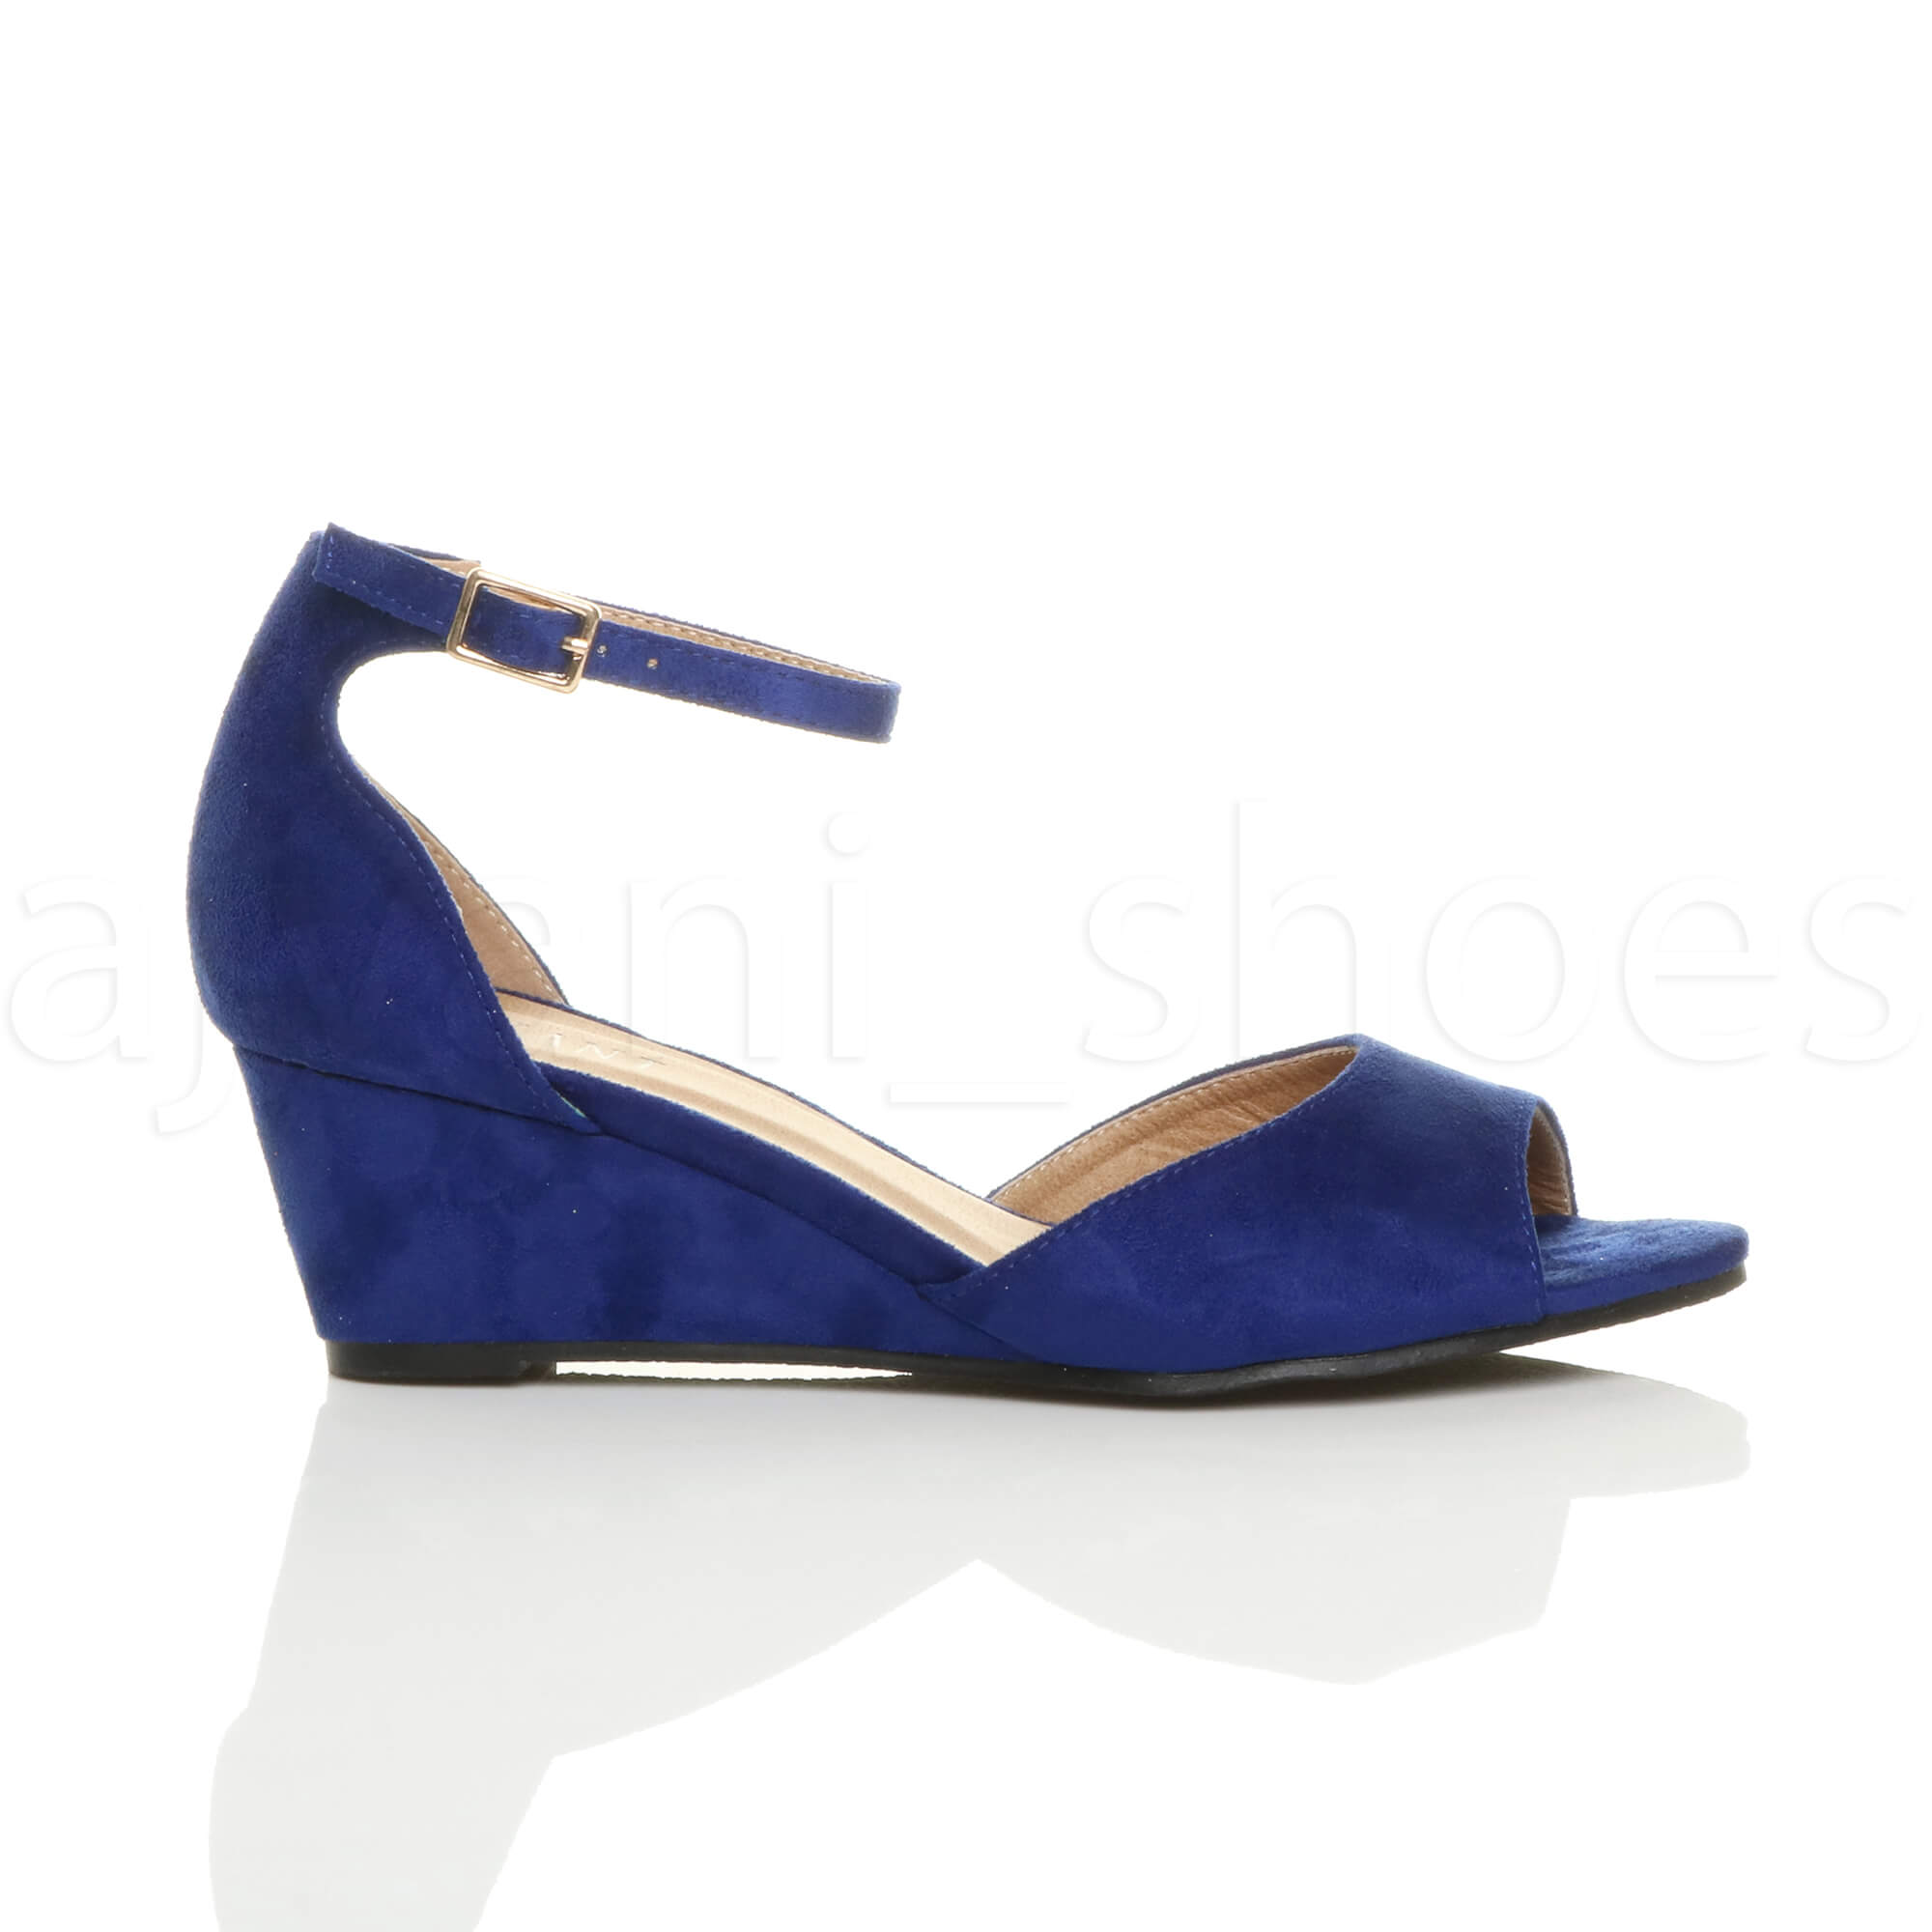 WOMENS-LADIES-LOW-MID-WEDGE-HEEL-ANKLE-STRAP-SMART-CASUAL-EVENING-SANDALS-SIZE thumbnail 27